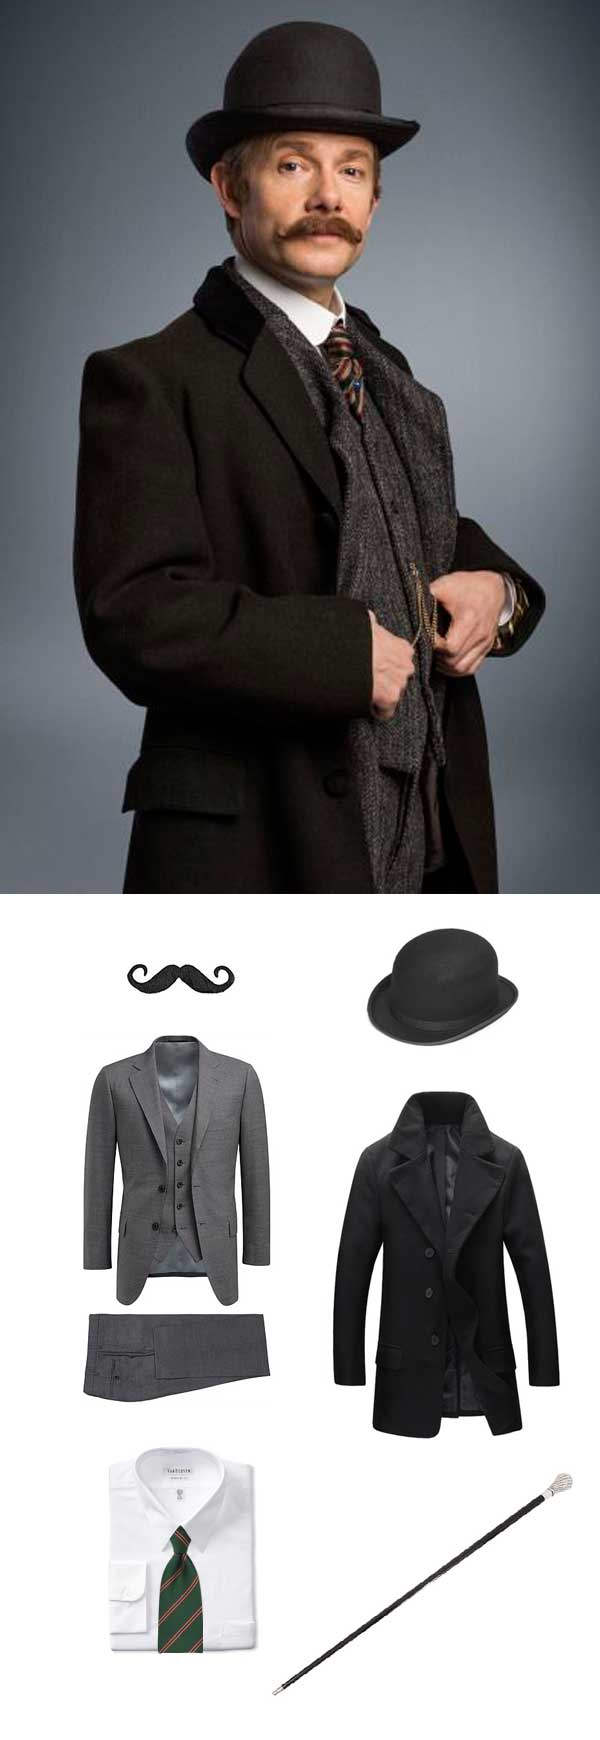 Dr. Watson Costume Halloween Outfit